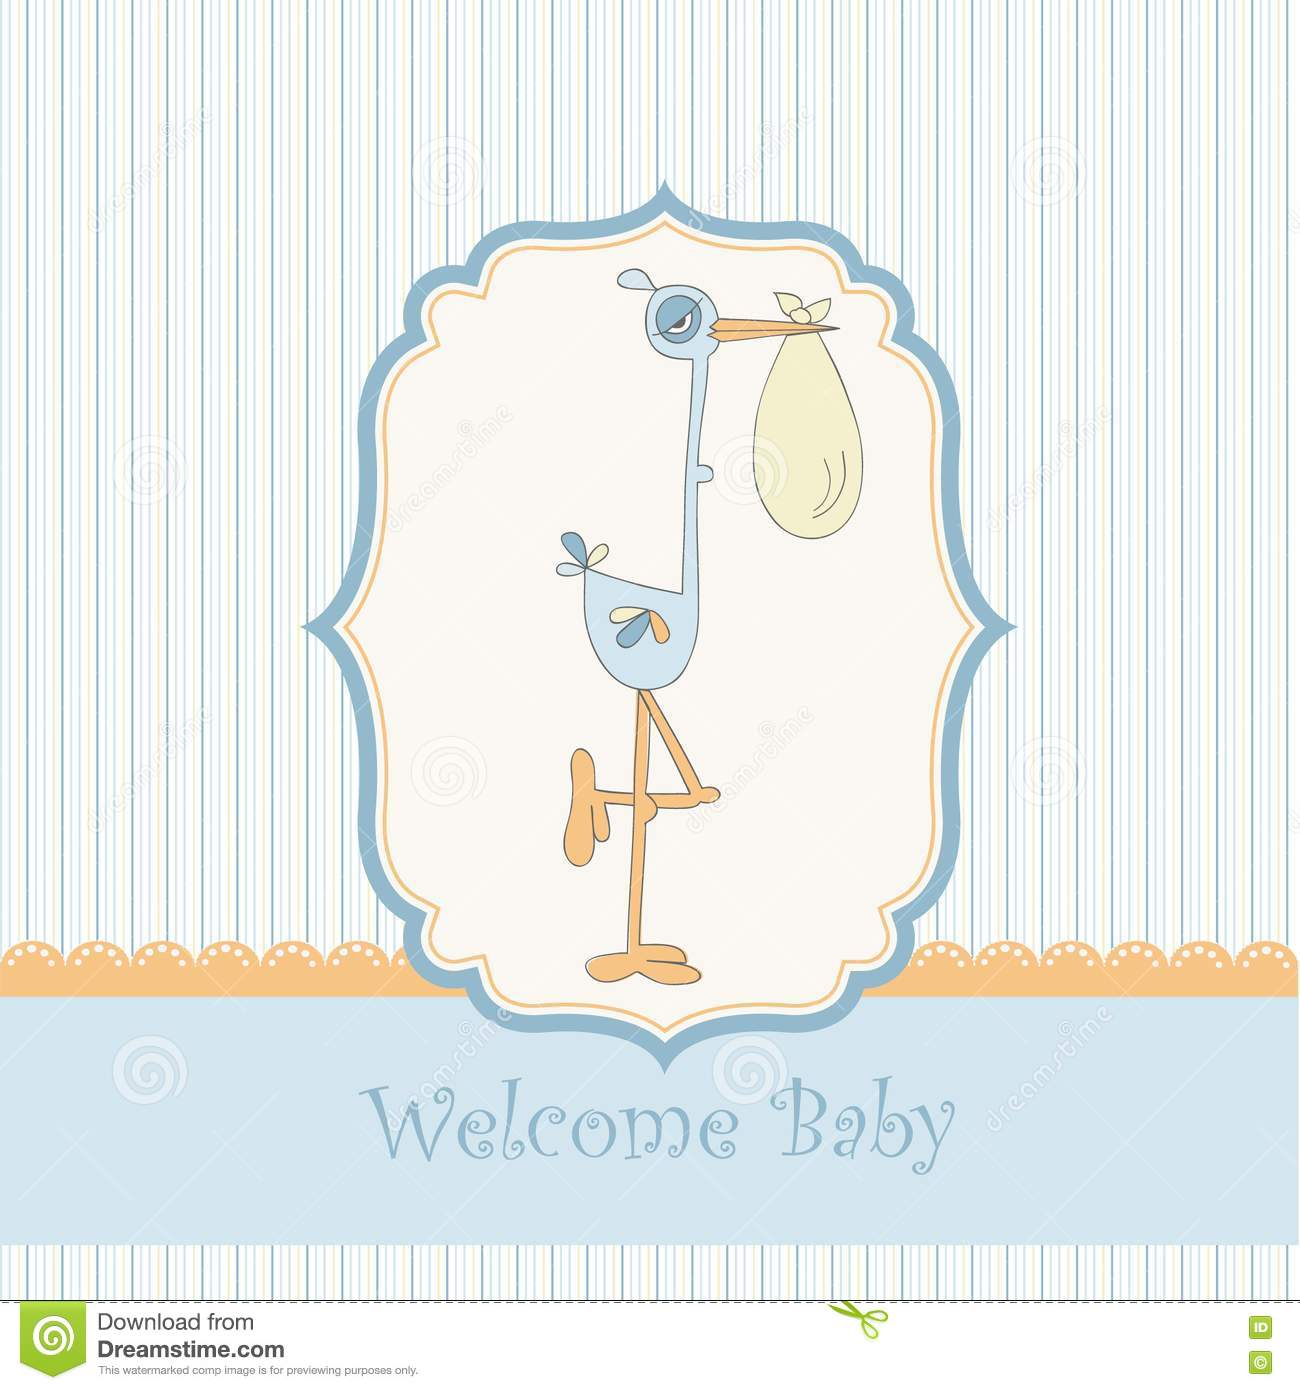 welcome baby card with stork royalty free stock images